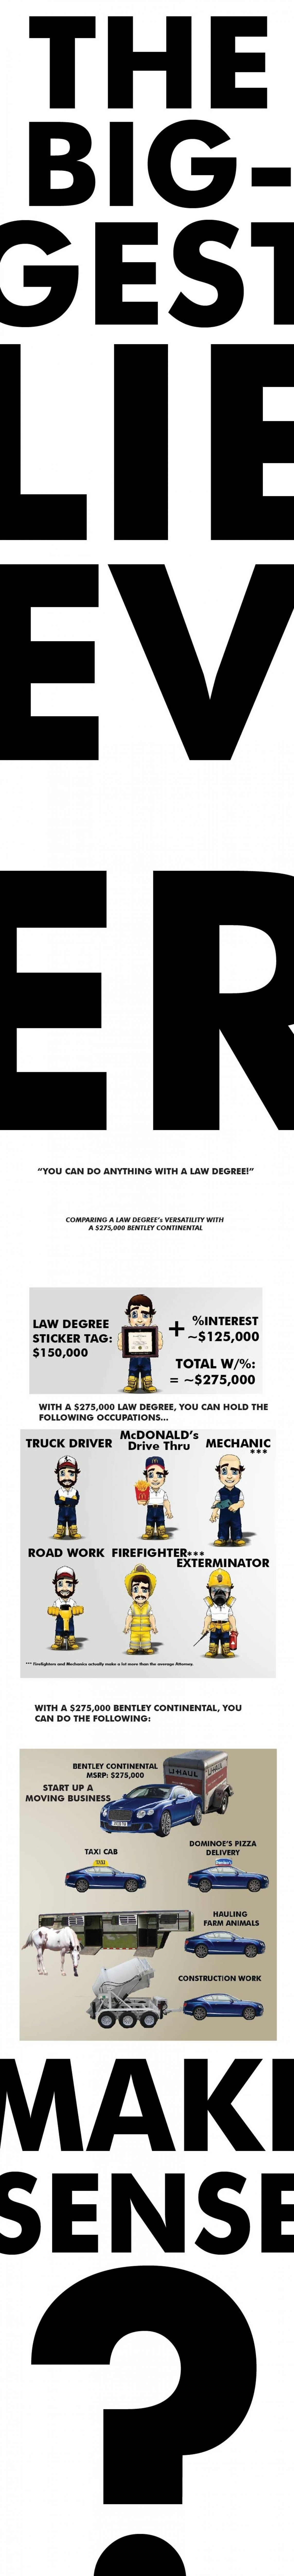 YOU CAN DO ANYTHING WITH A LAW DEGREE: LIE Infographic